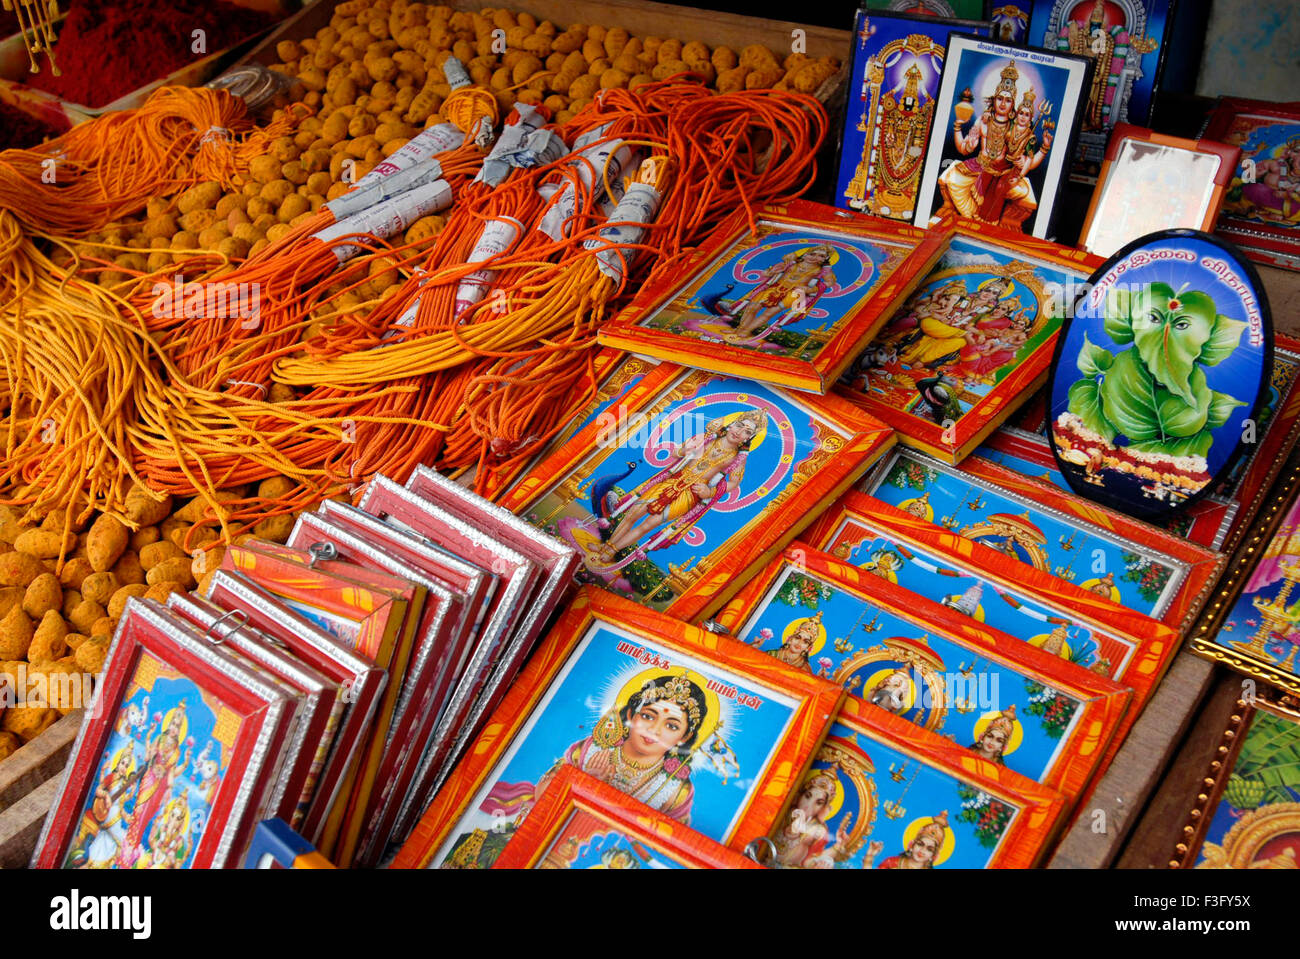 Turmeric and gods pictures in shop ; Swamimalai ; Tamil Nadu ; India - Stock Image